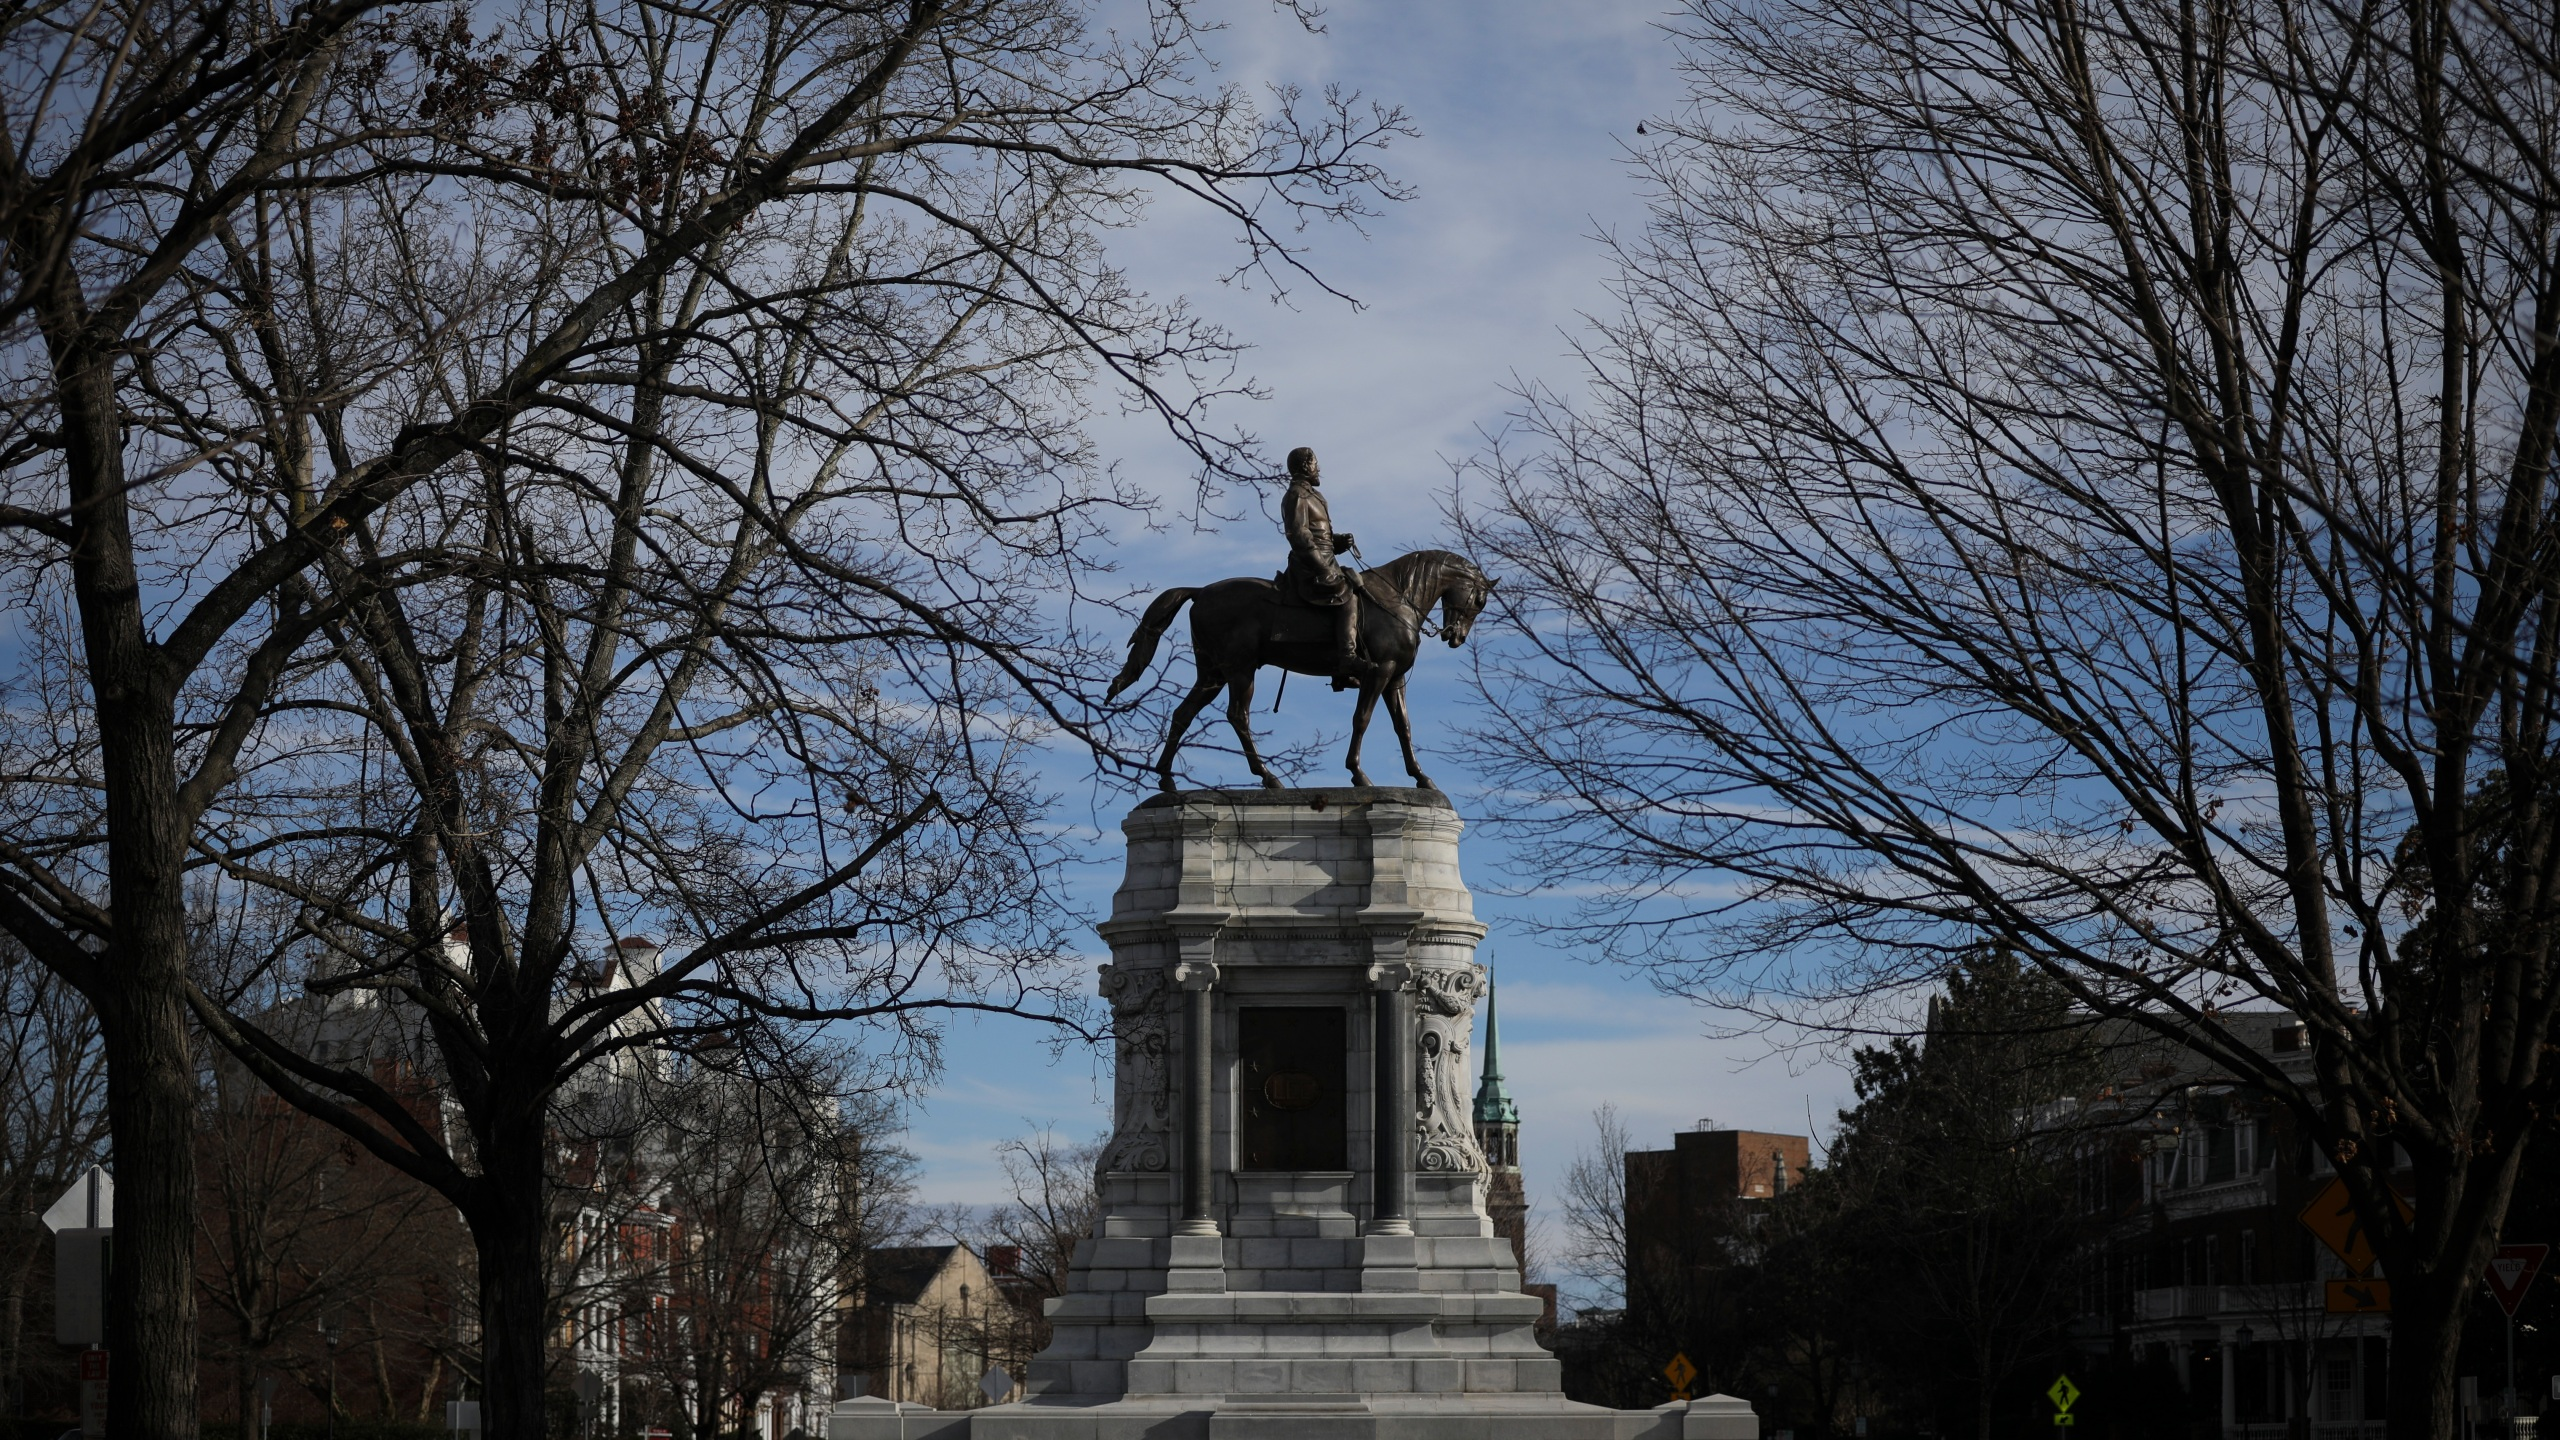 The Robert E. Lee Monument stands on Monument Avenue, February 8, 2019 in Richmond, Virginia. (Drew Angerer/Getty Images)